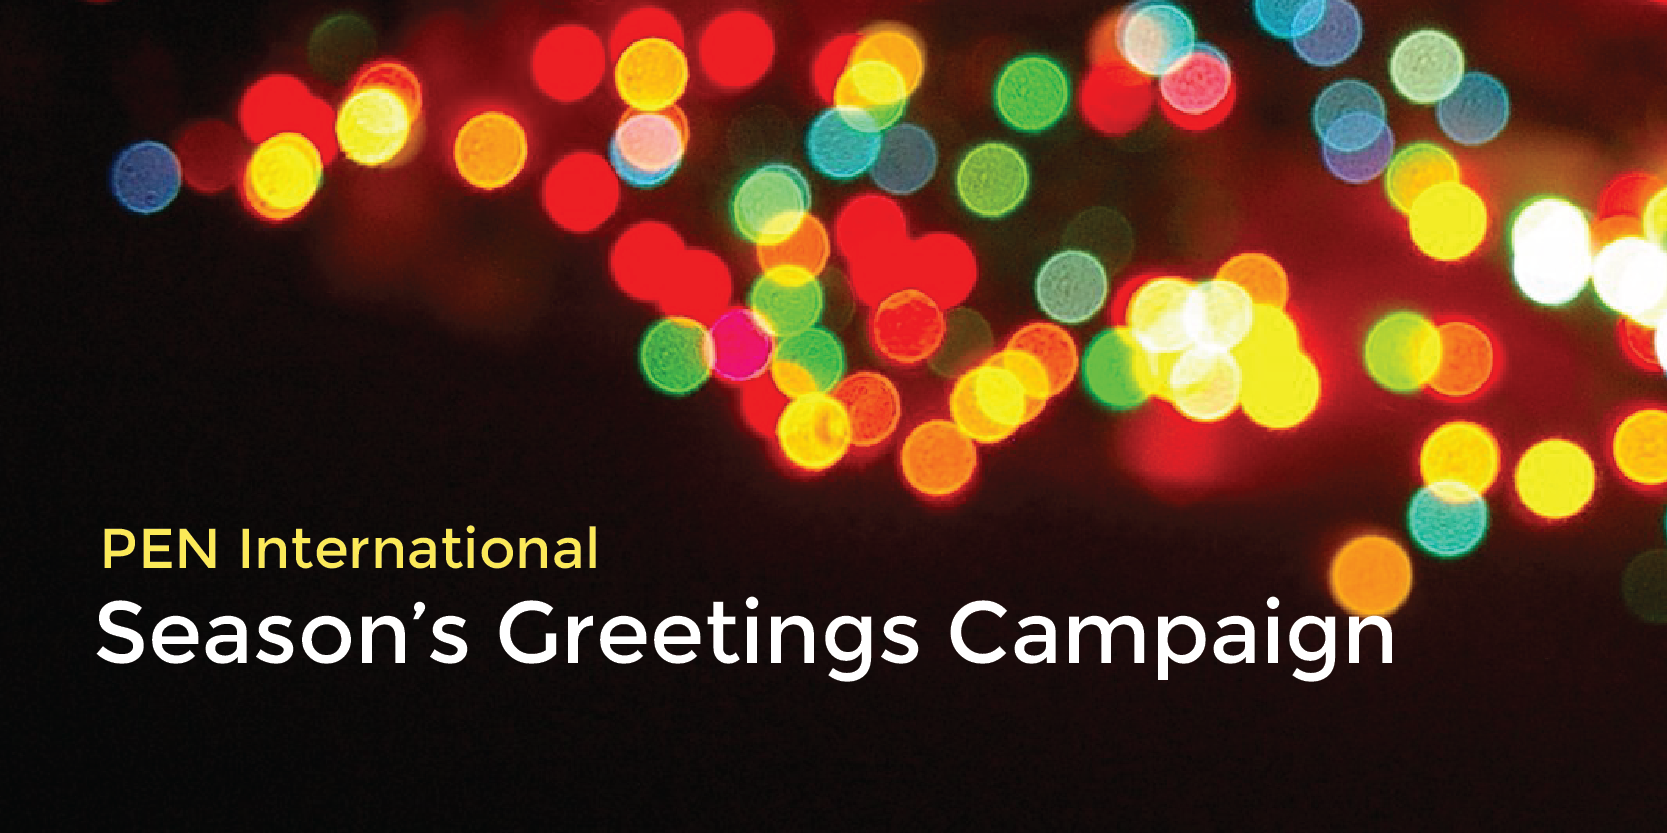 write letters to imprisoned writers as part of the PEN International Season's Greetings Campaign